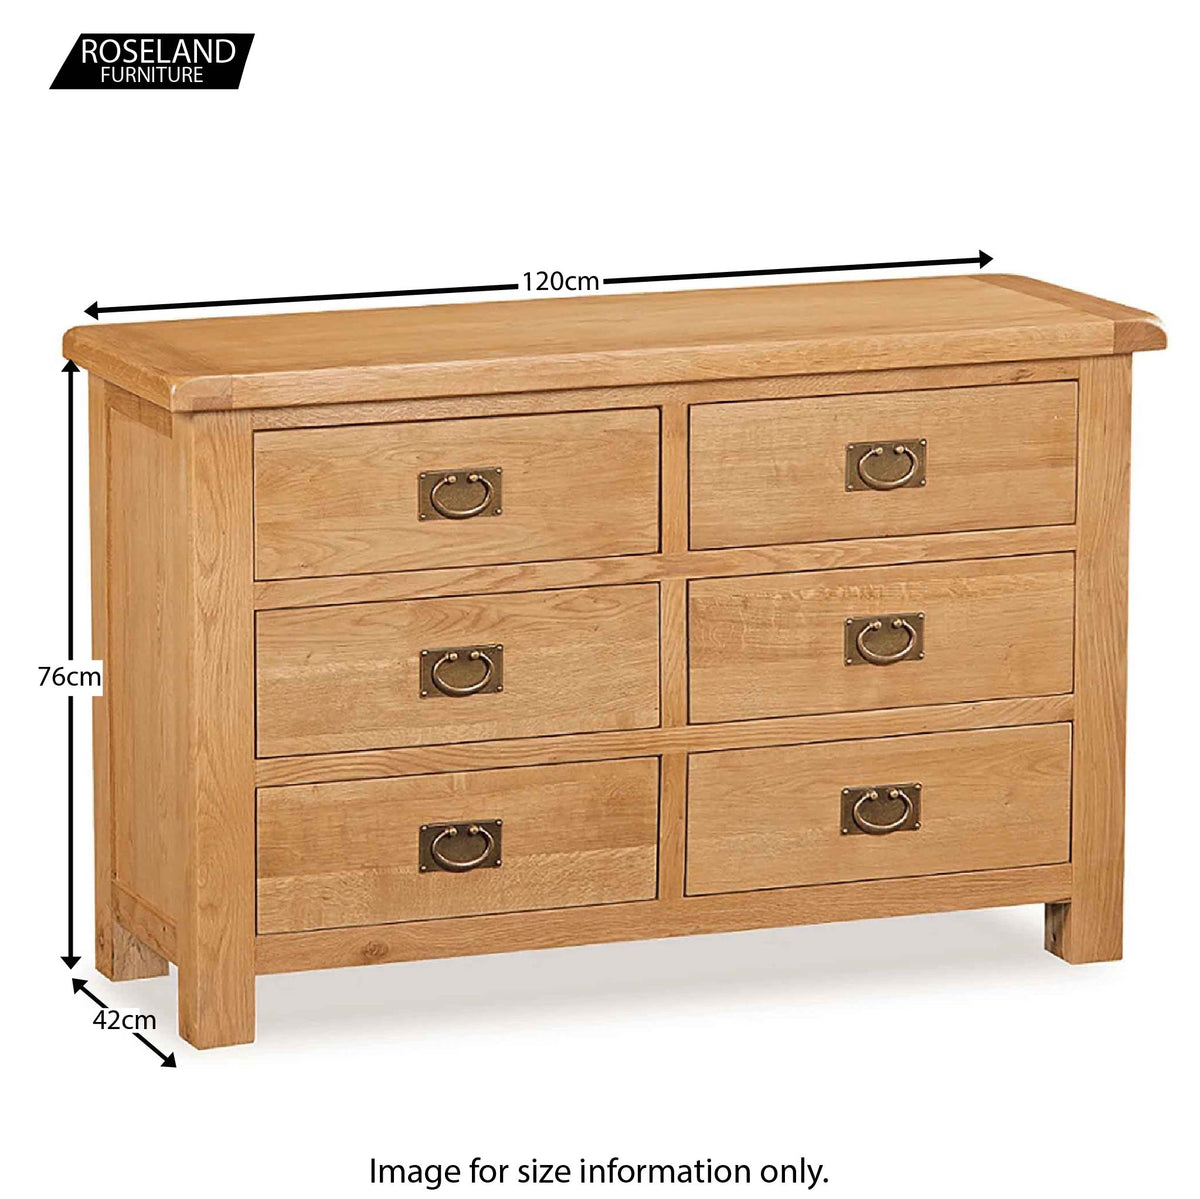 Zelah Oak 3+3 Drawer Chest of Drawers - Size Guide